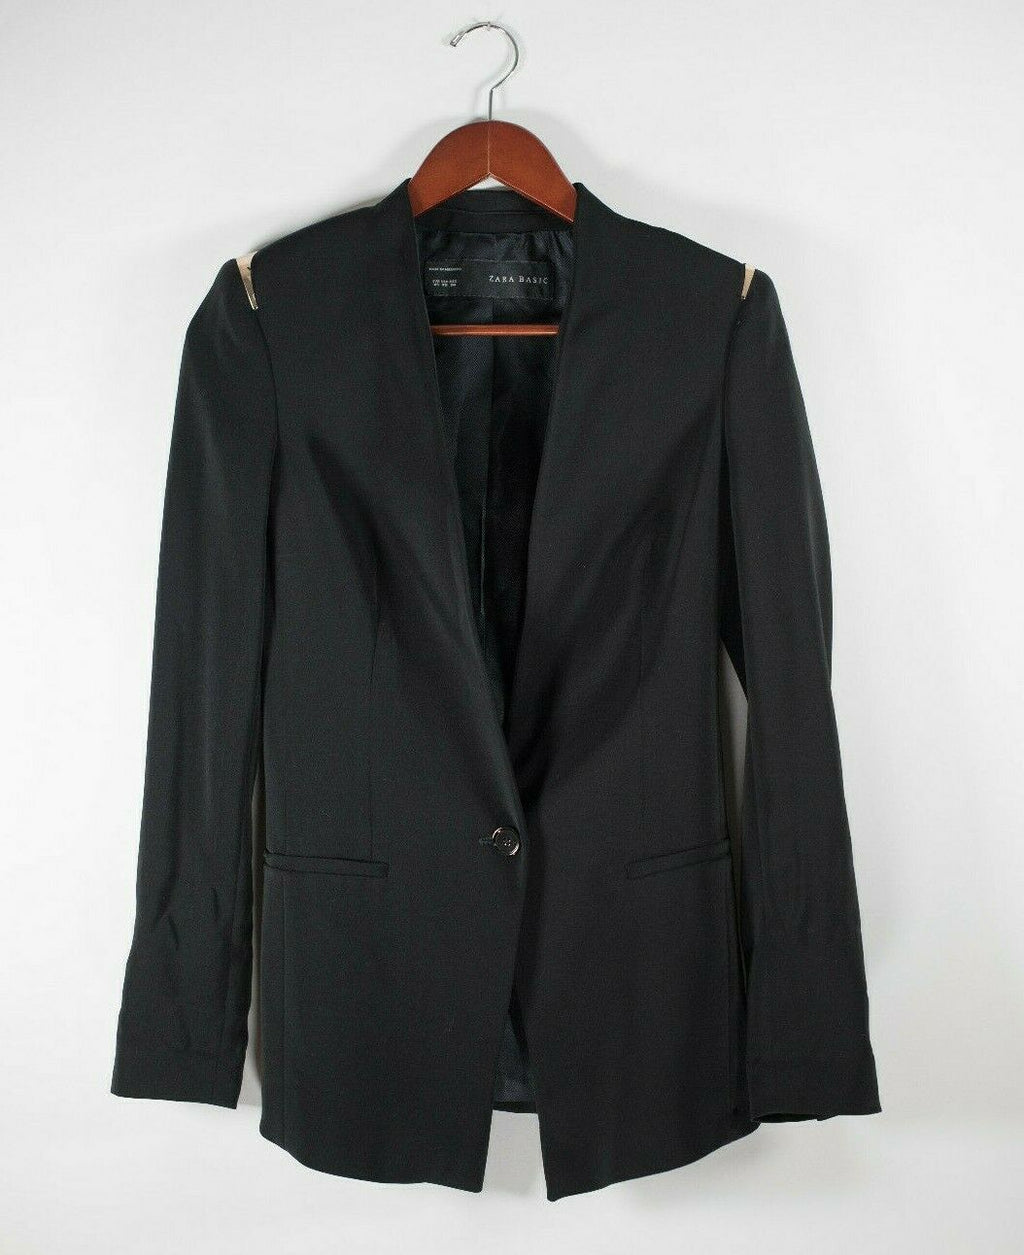 Zara Basic Womens Size XS Black Blazer Padded Copper Shoulders Button Jacket